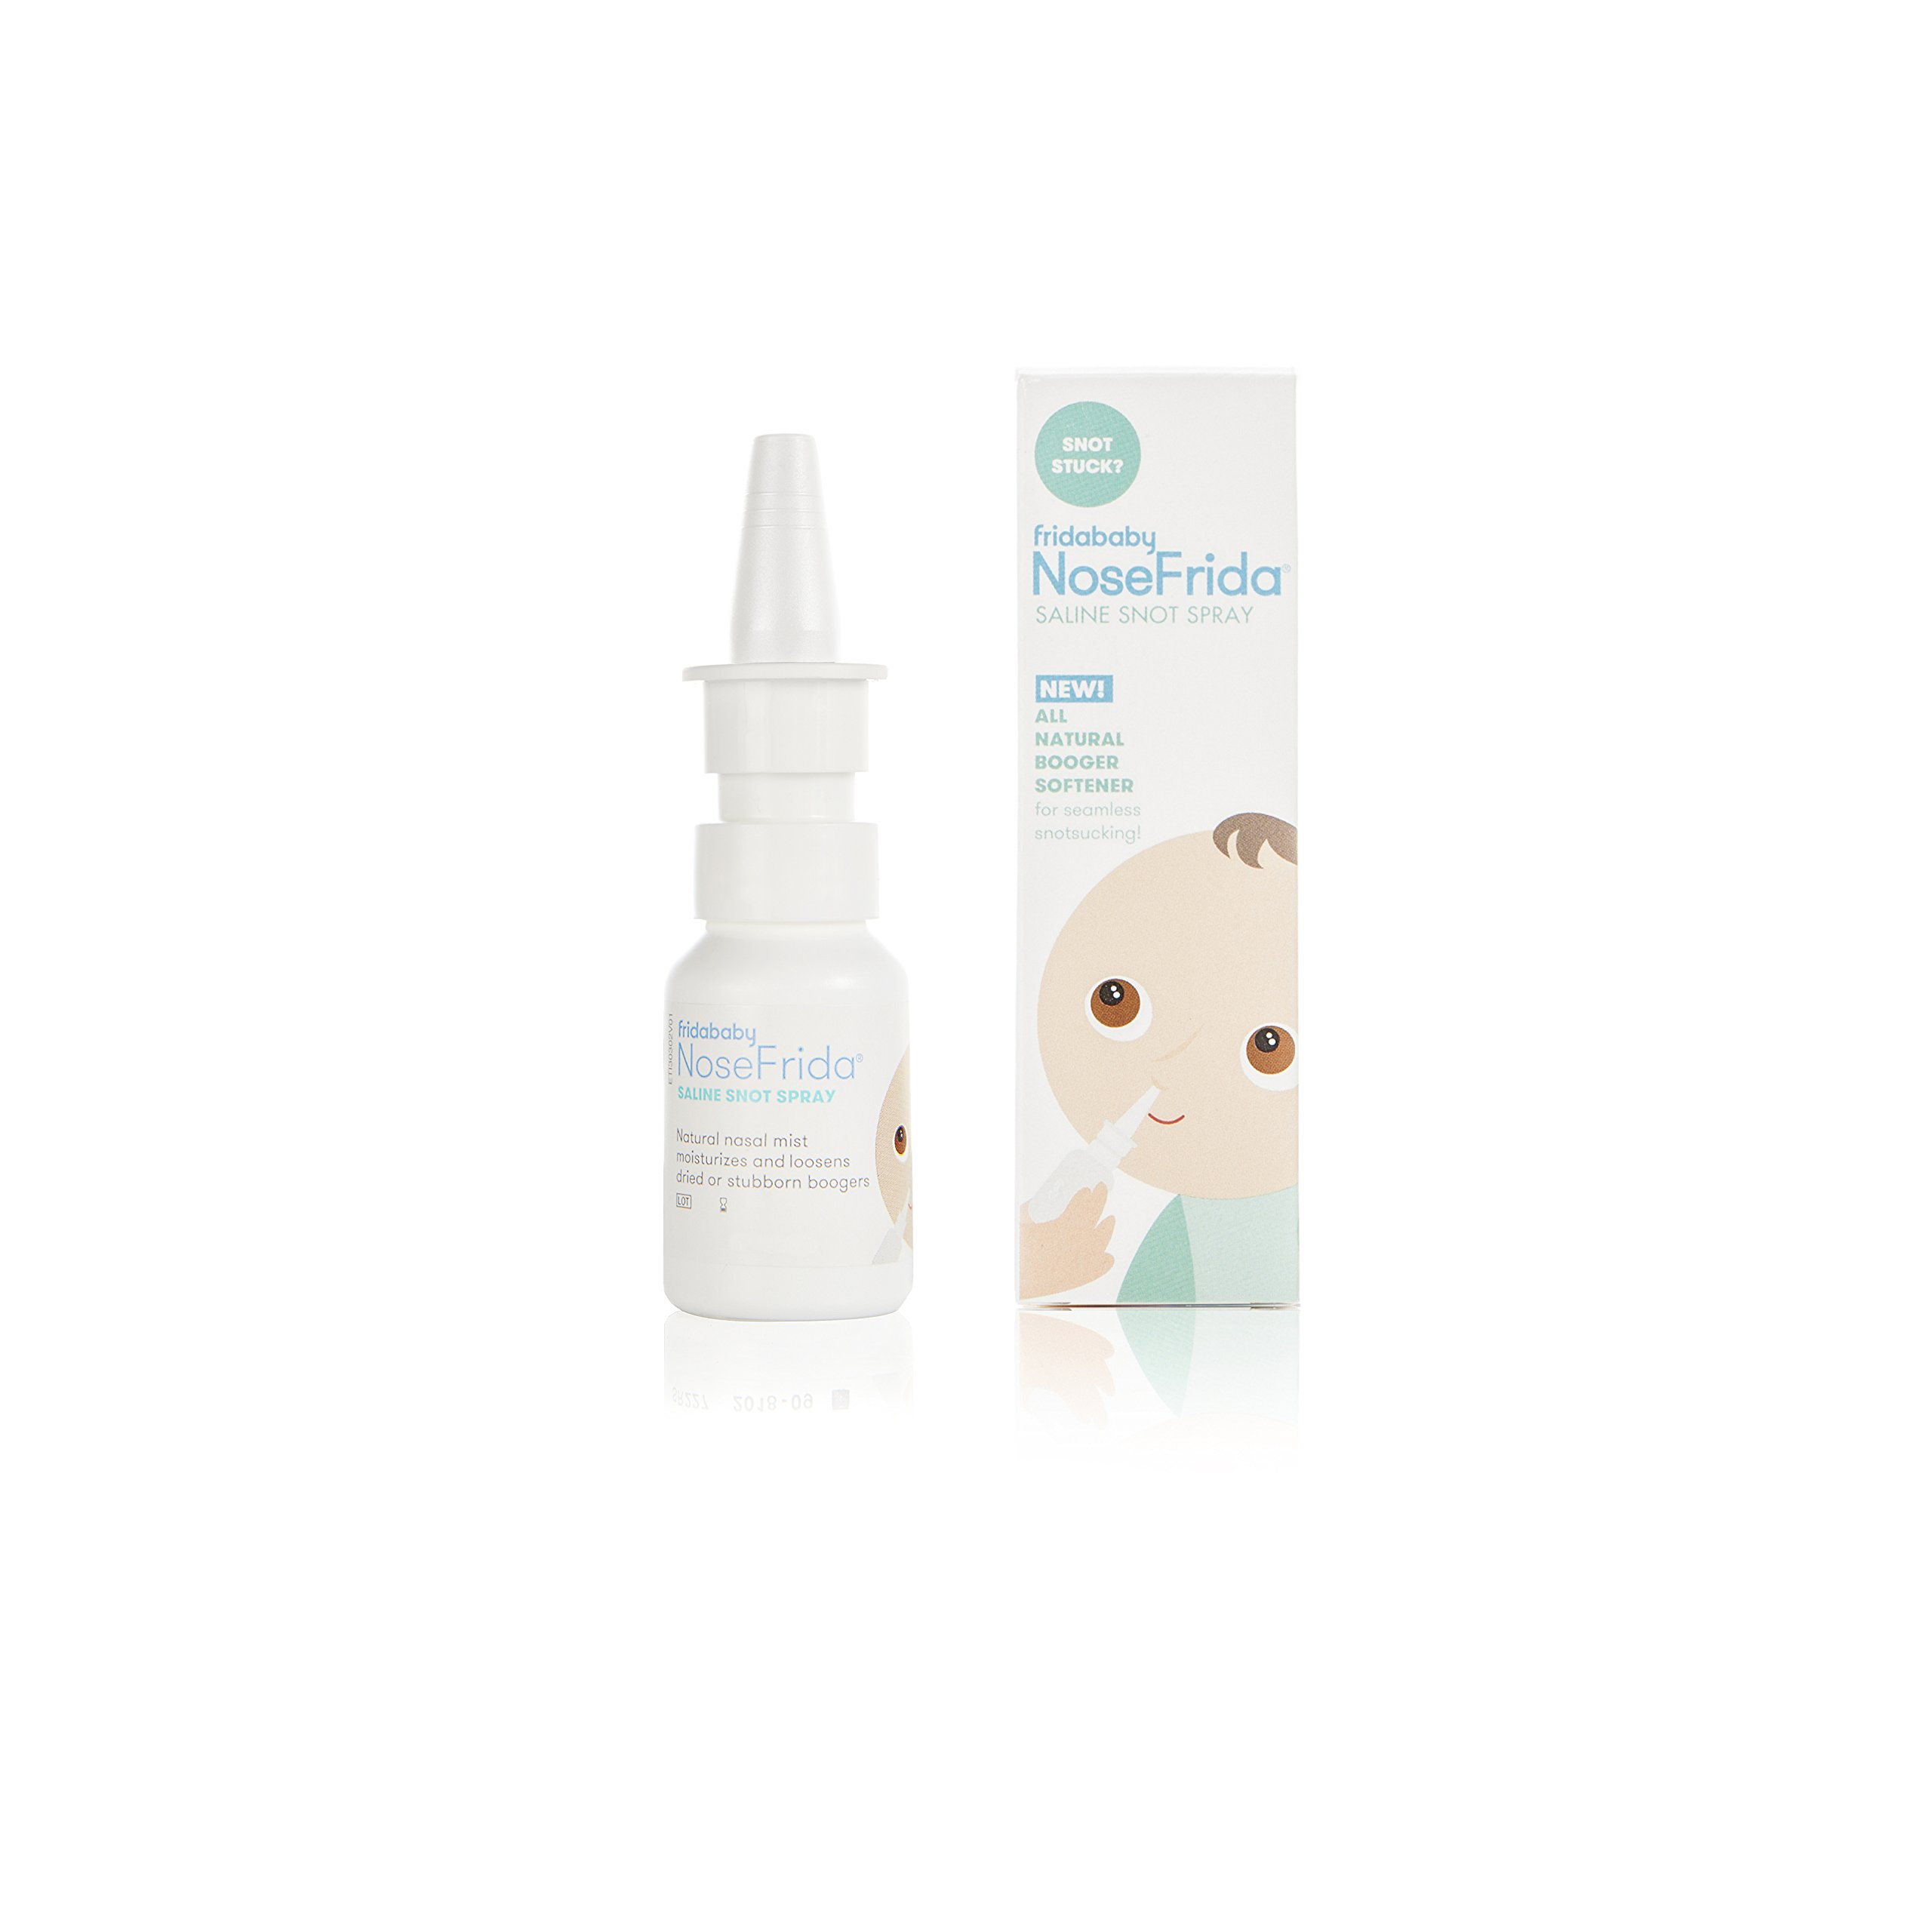 Saline Nasal Spray NoseFrida Saline Snot Spray by Fridababy. All-natural Sea Salt and Water formula moisturizes and cleans nasal passages